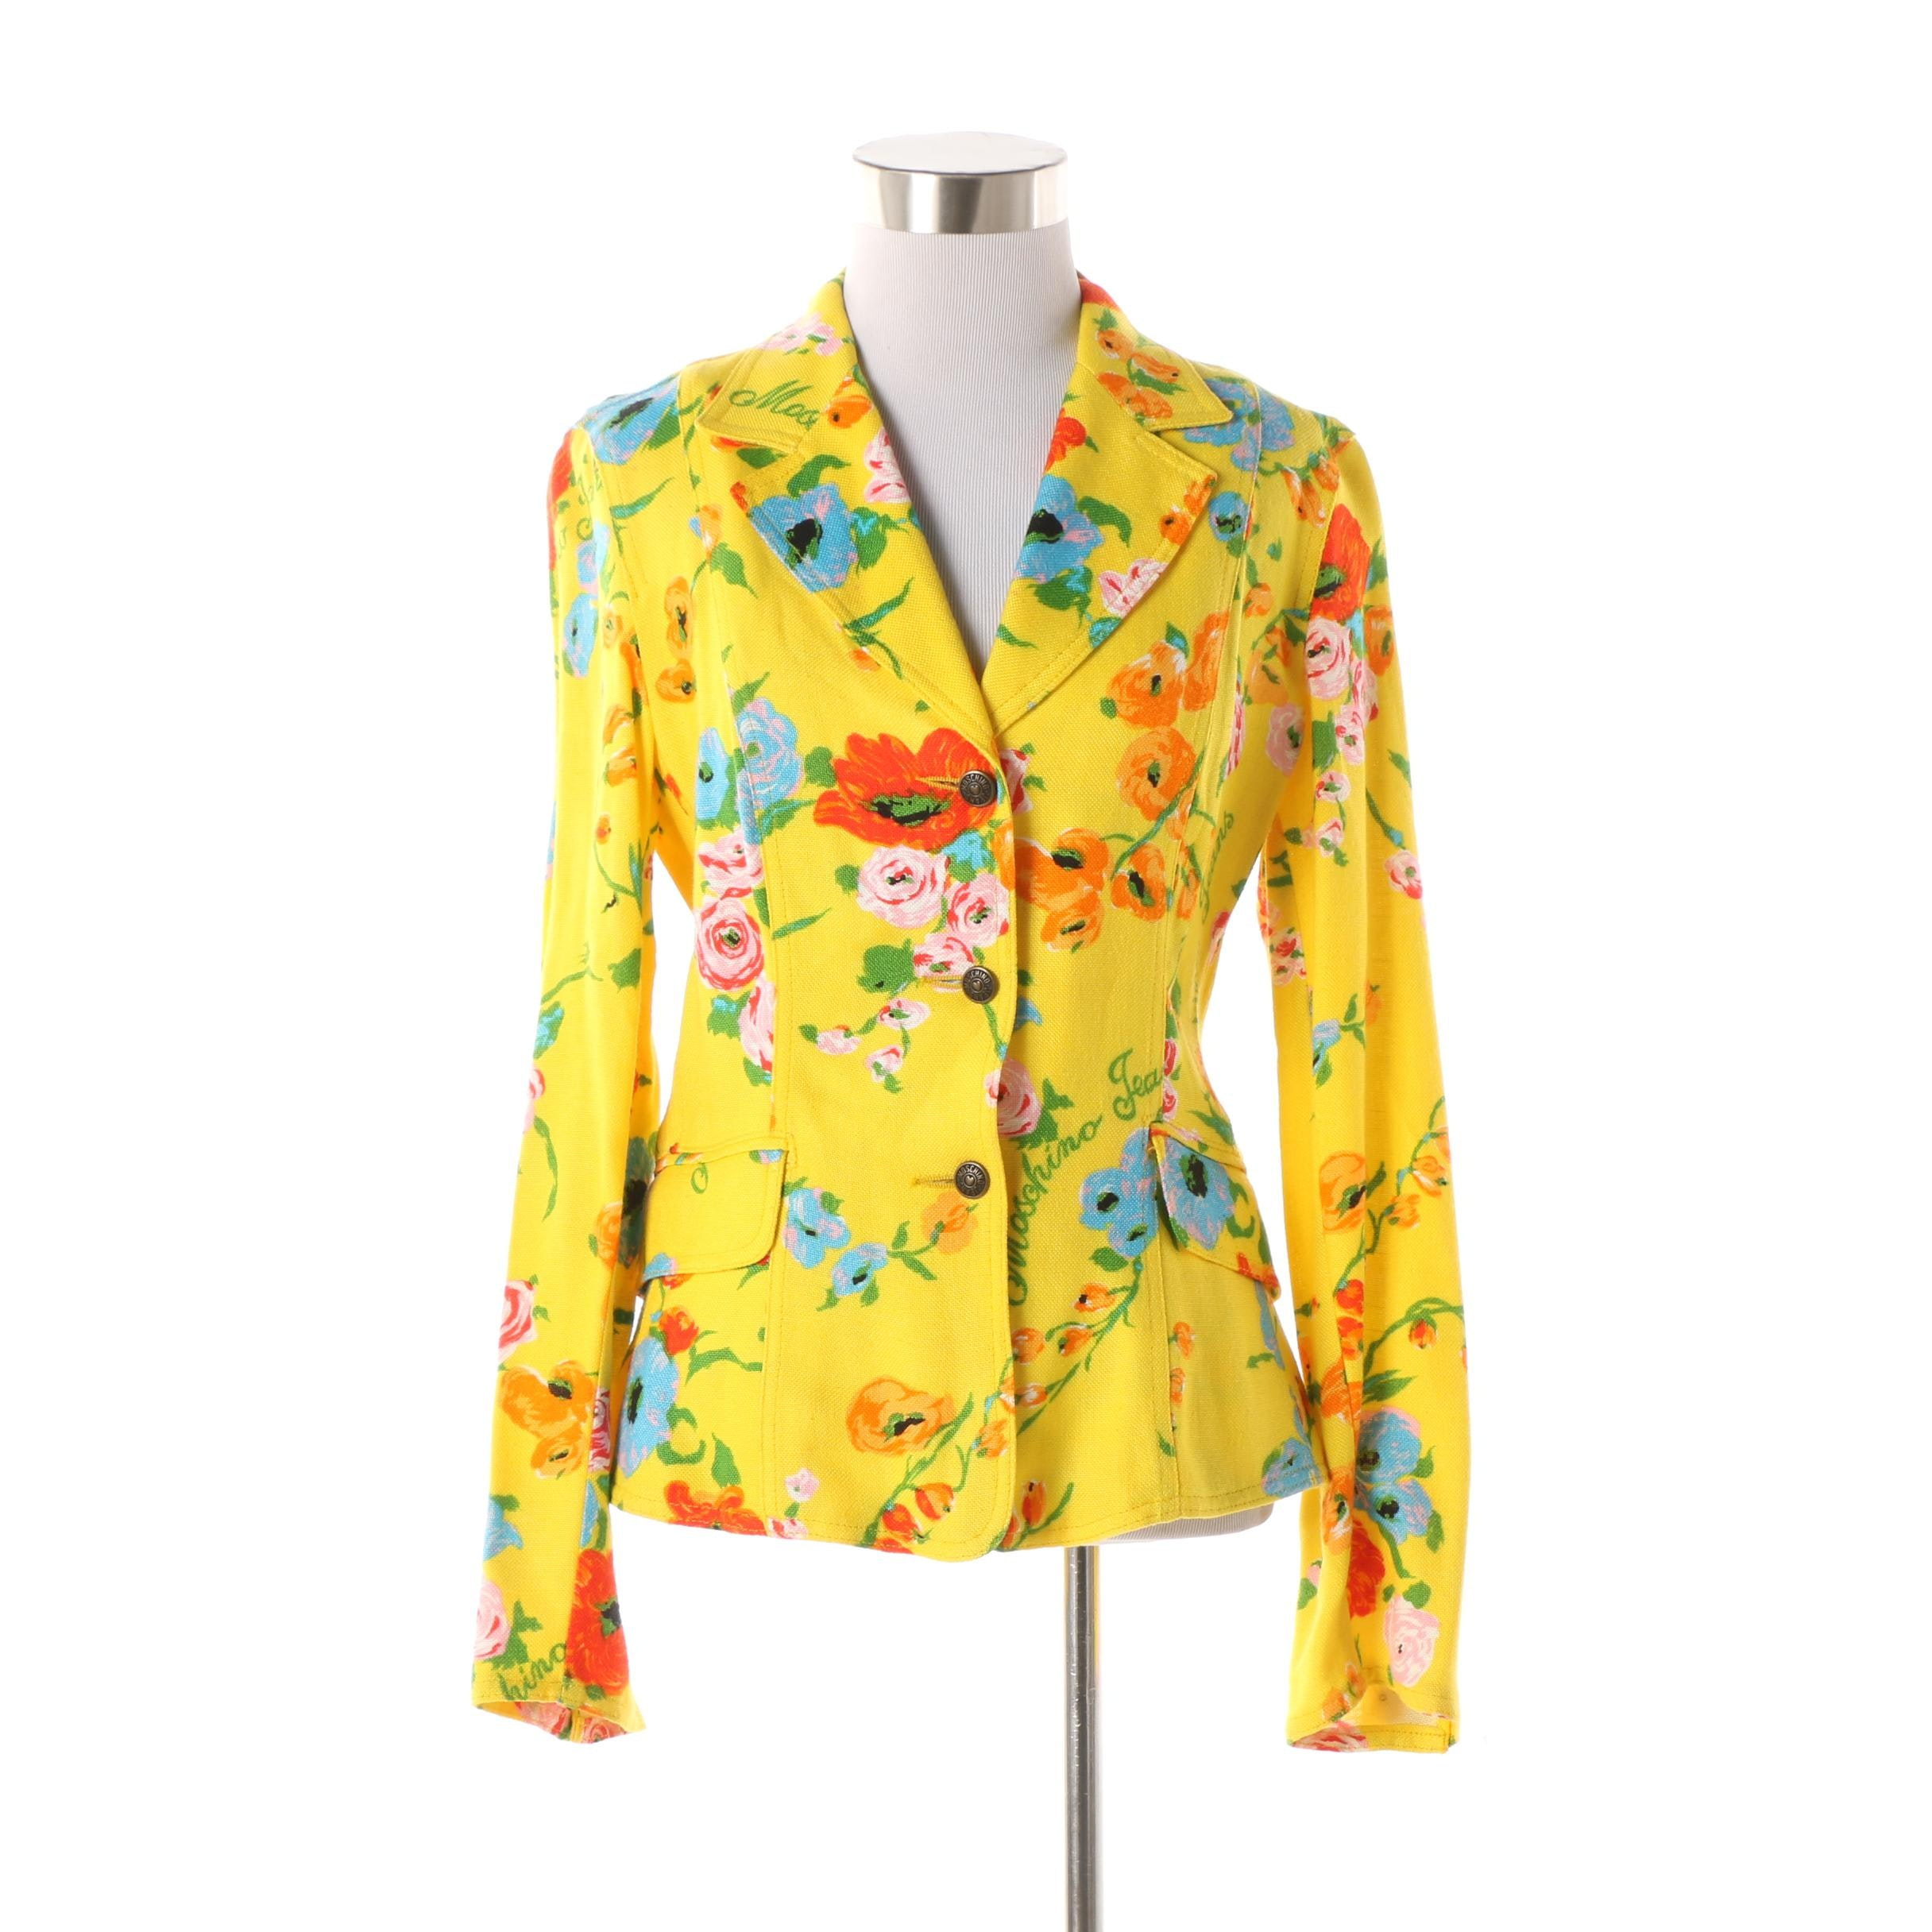 Women's 1980s Vintage Moschino Jeans Yellow Floral Rayon Blend Fitted Jacket